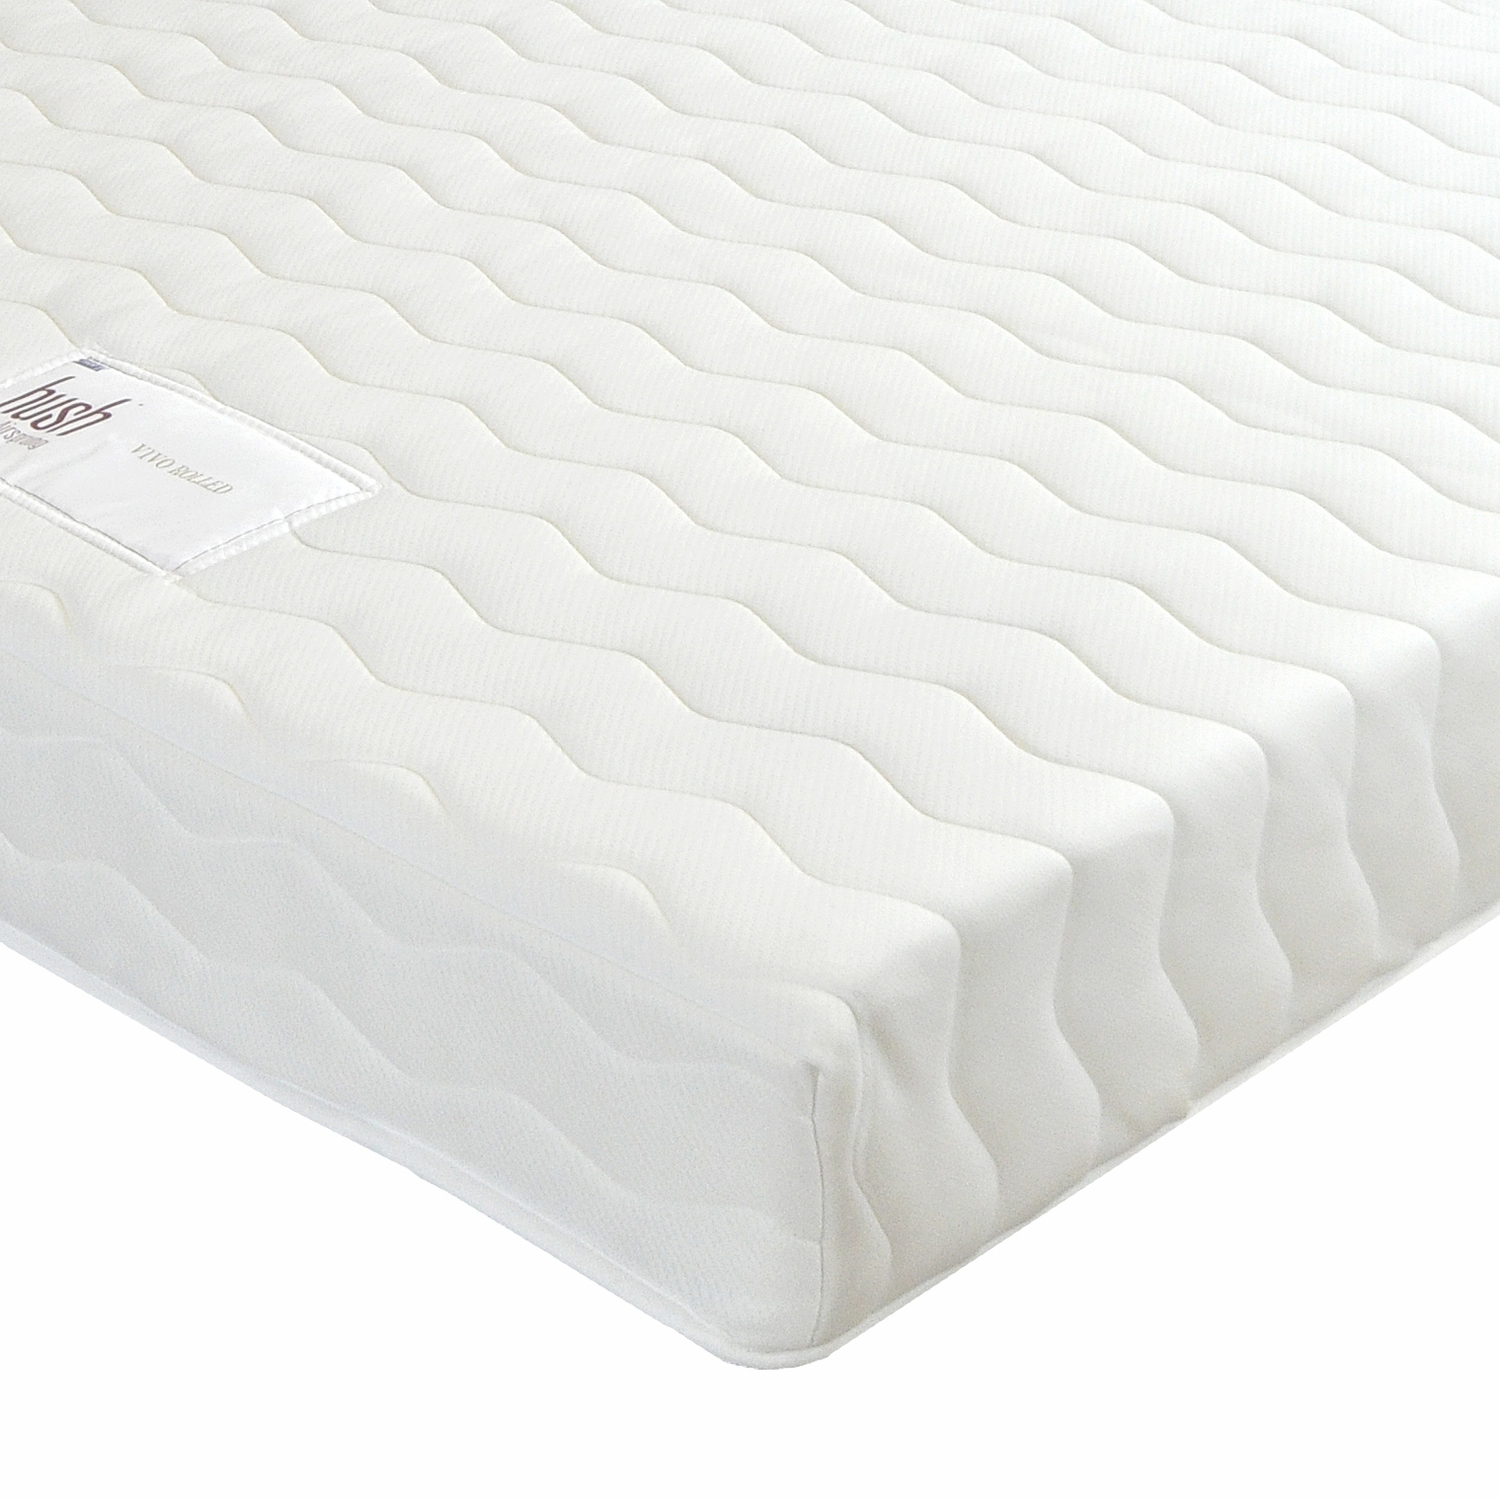 Airsprung Hush ViVo Rolled Pocket Sprung Mattress